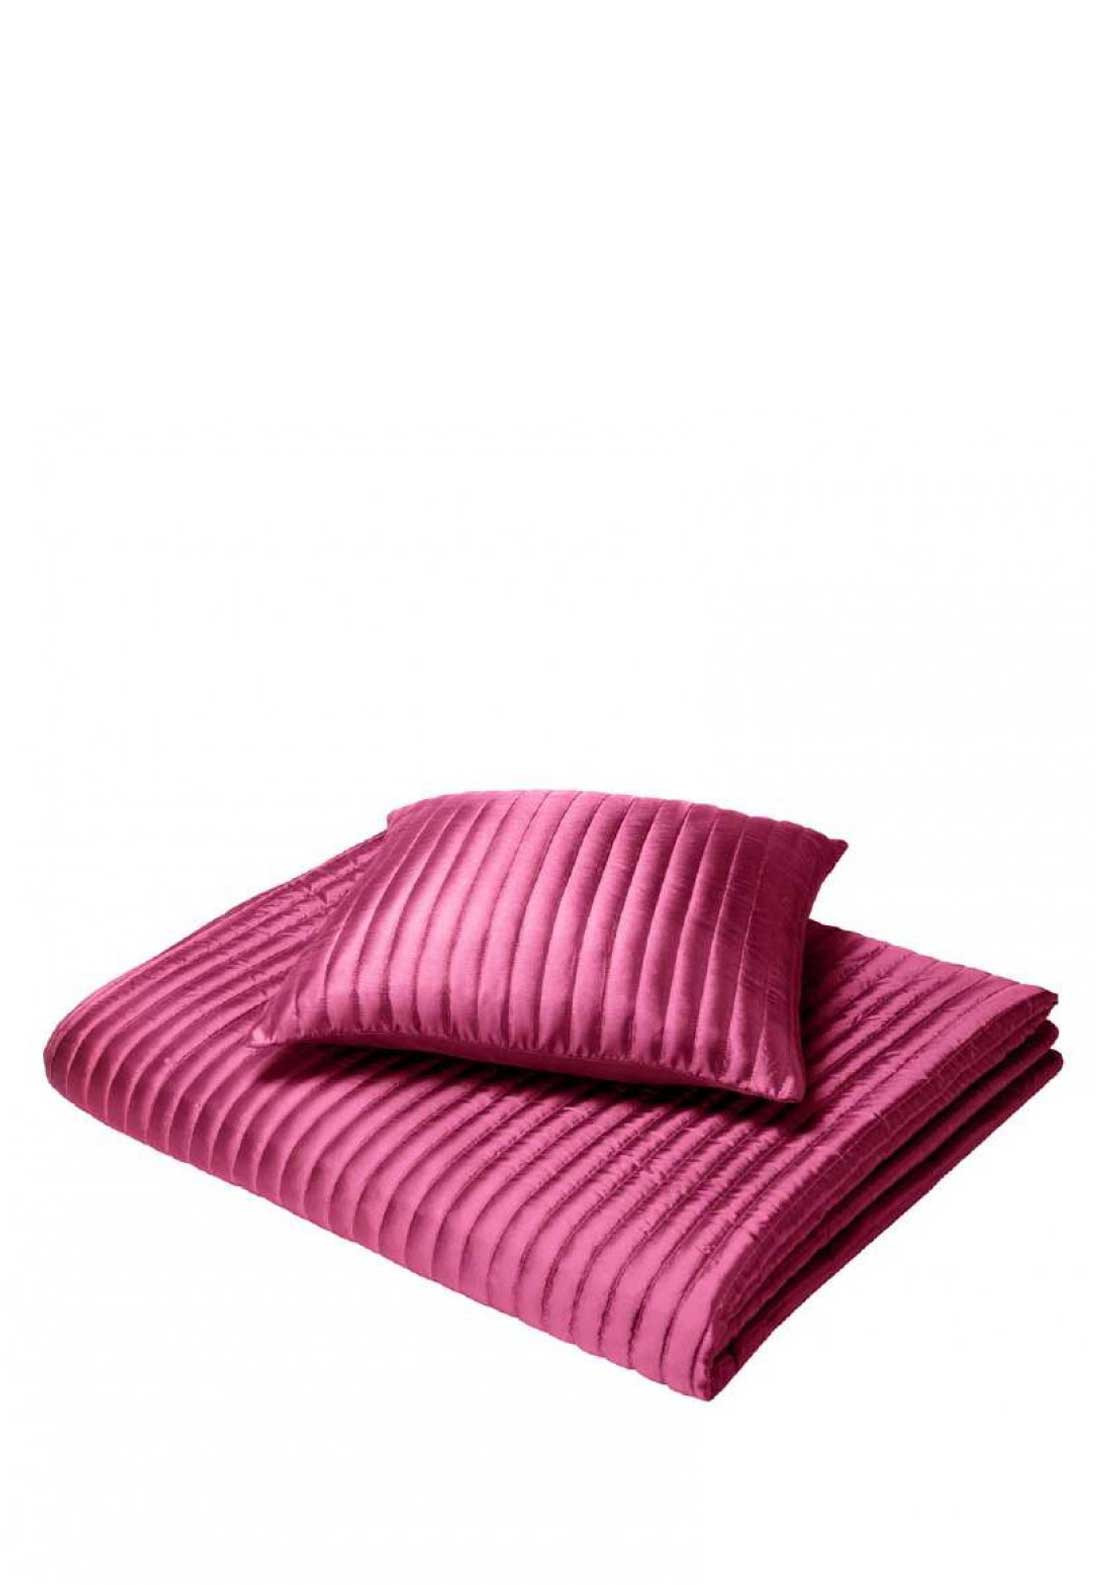 Catherine Lansfield Home Taffeta Cushion Cover, Hot Pink